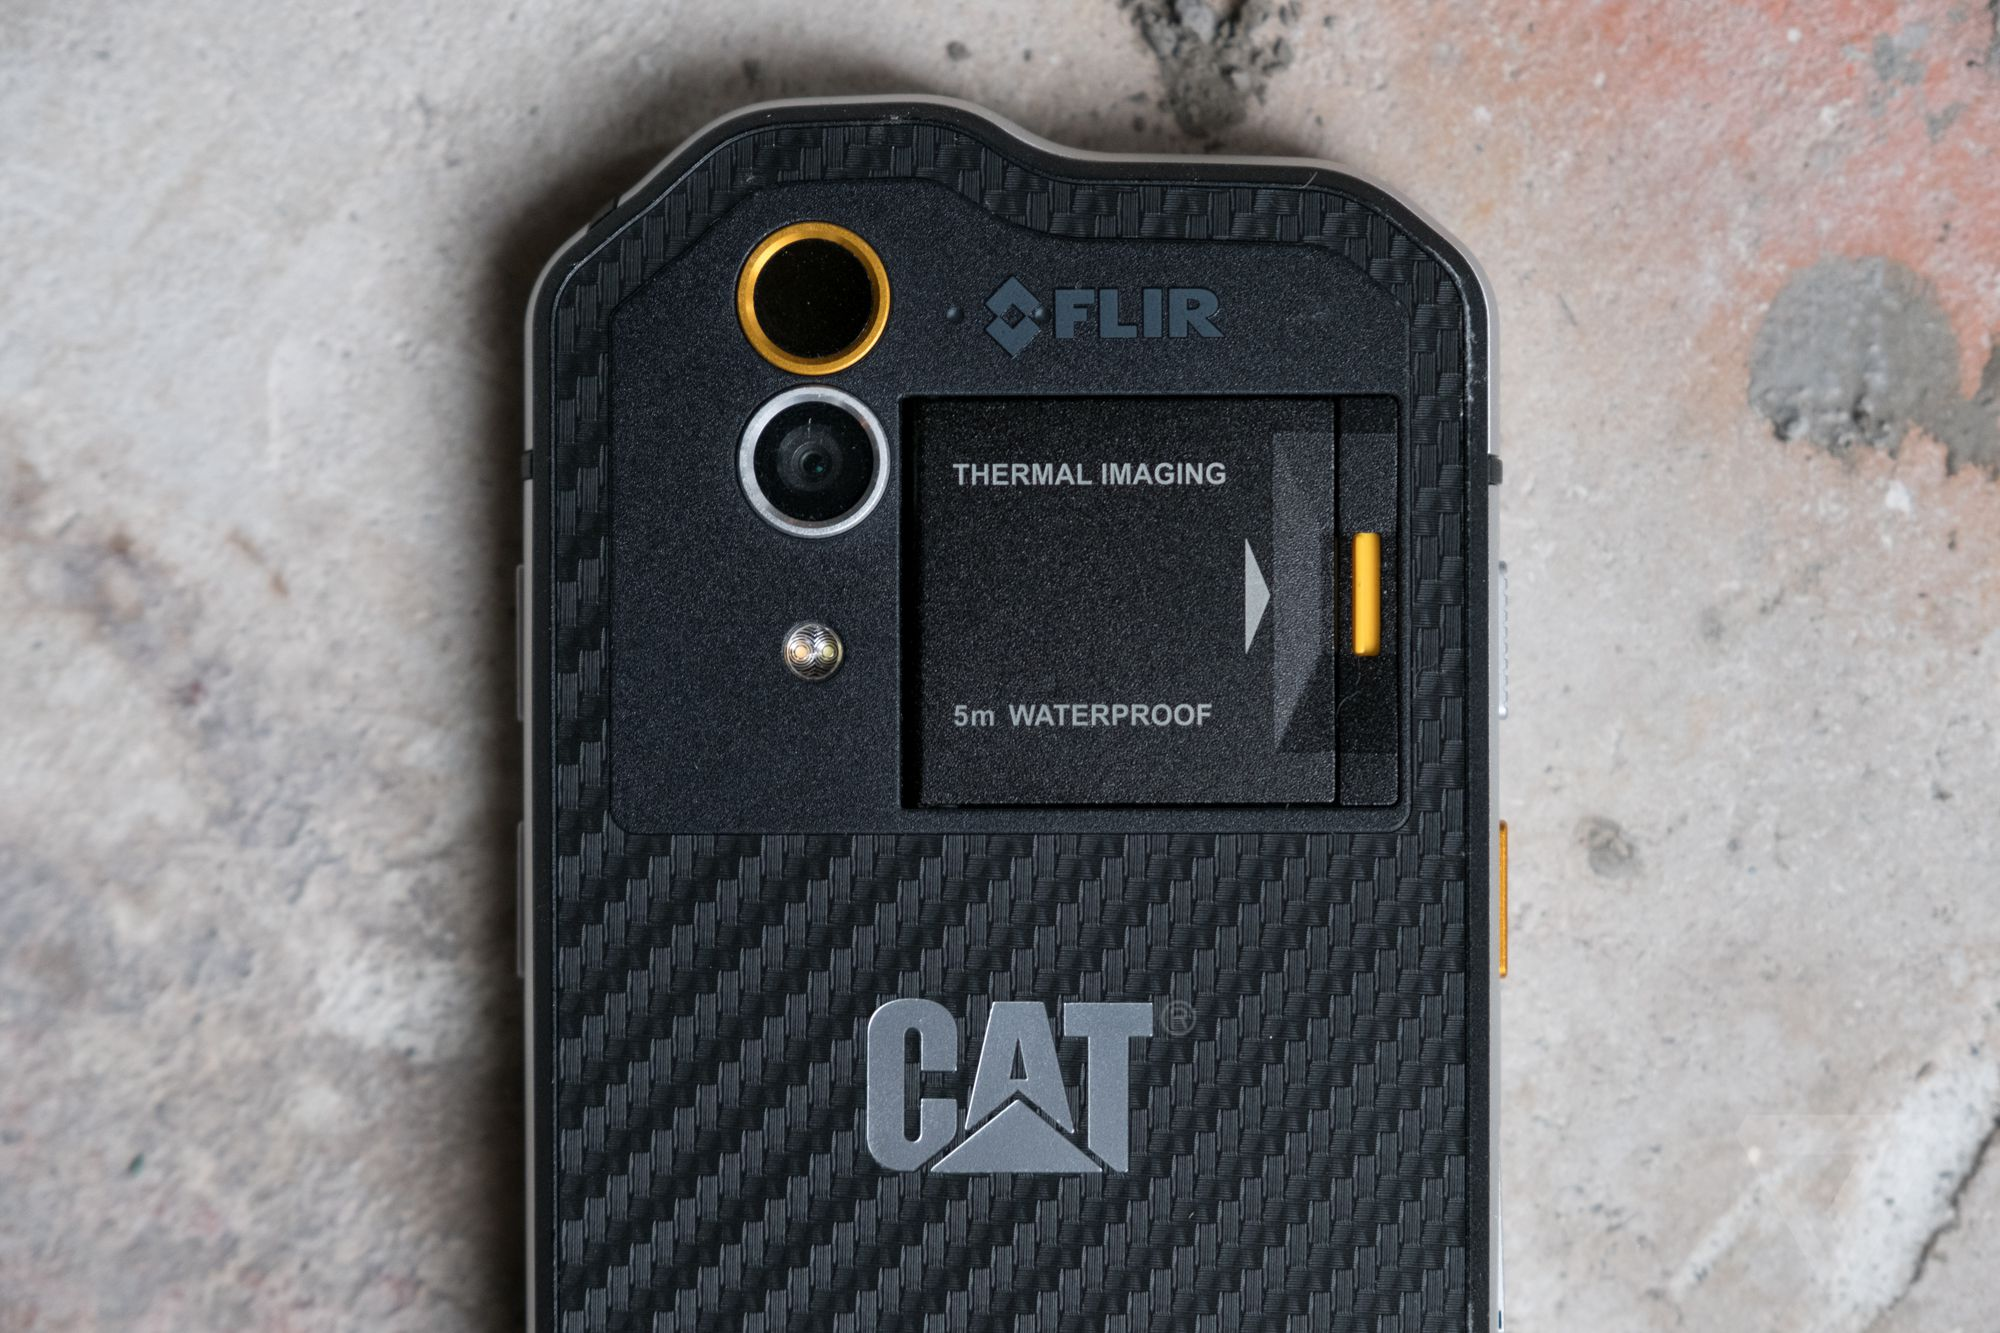 Cat S Review A Rugged Phone That Can See In The Dark The Verge - 21 cats losing fight against technology